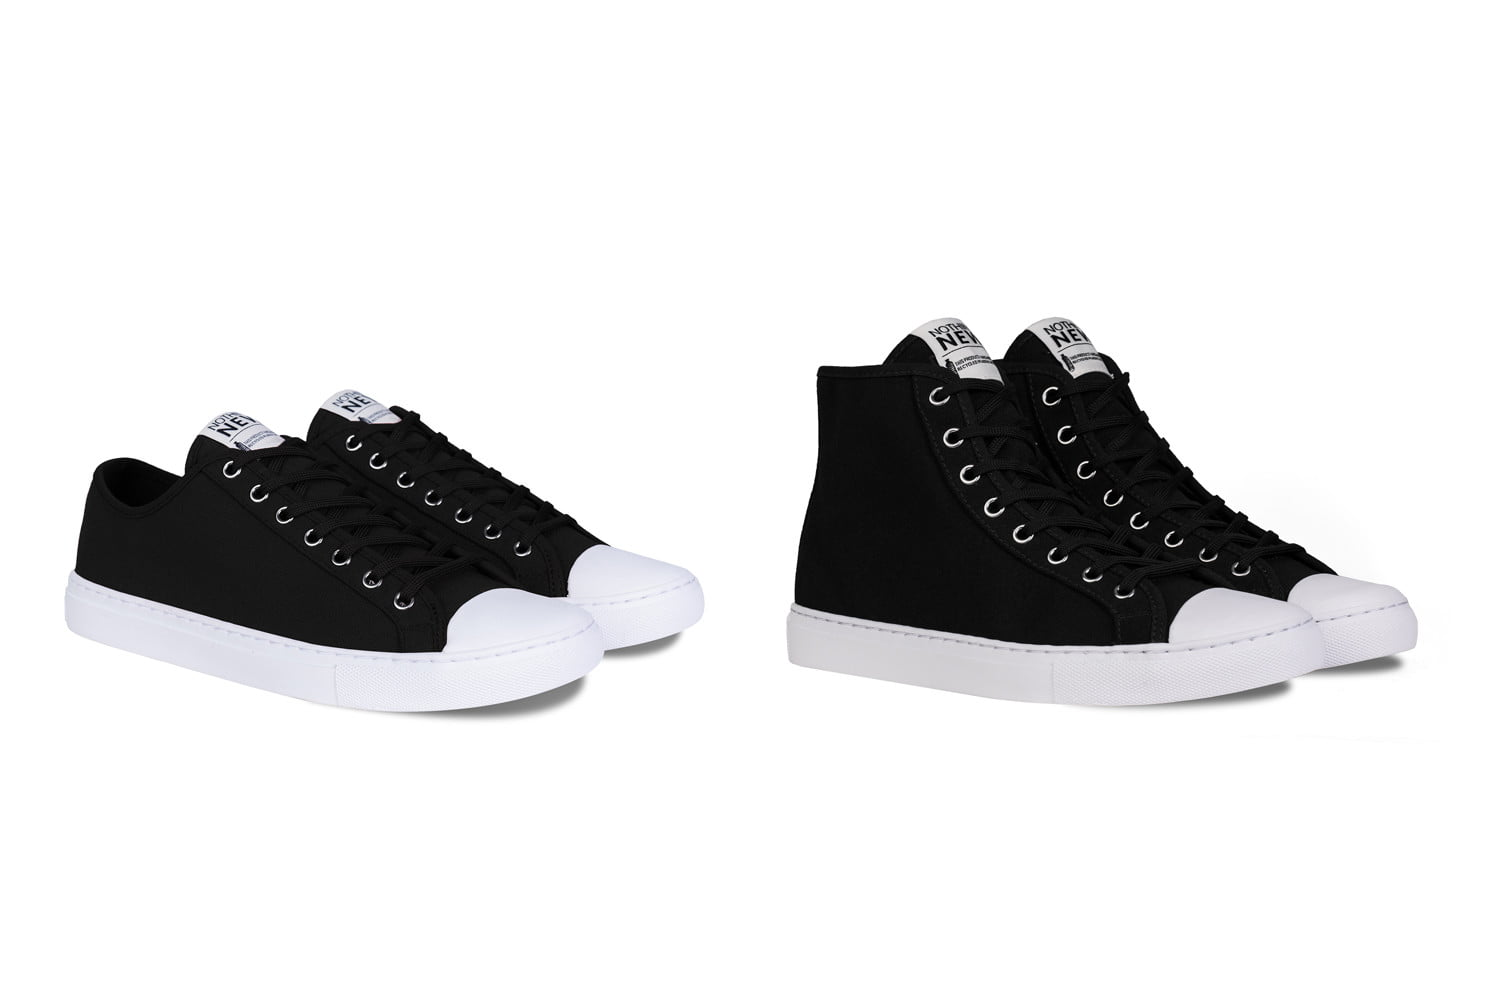 nothing new sustainable sneakers shoes black lowhigh top